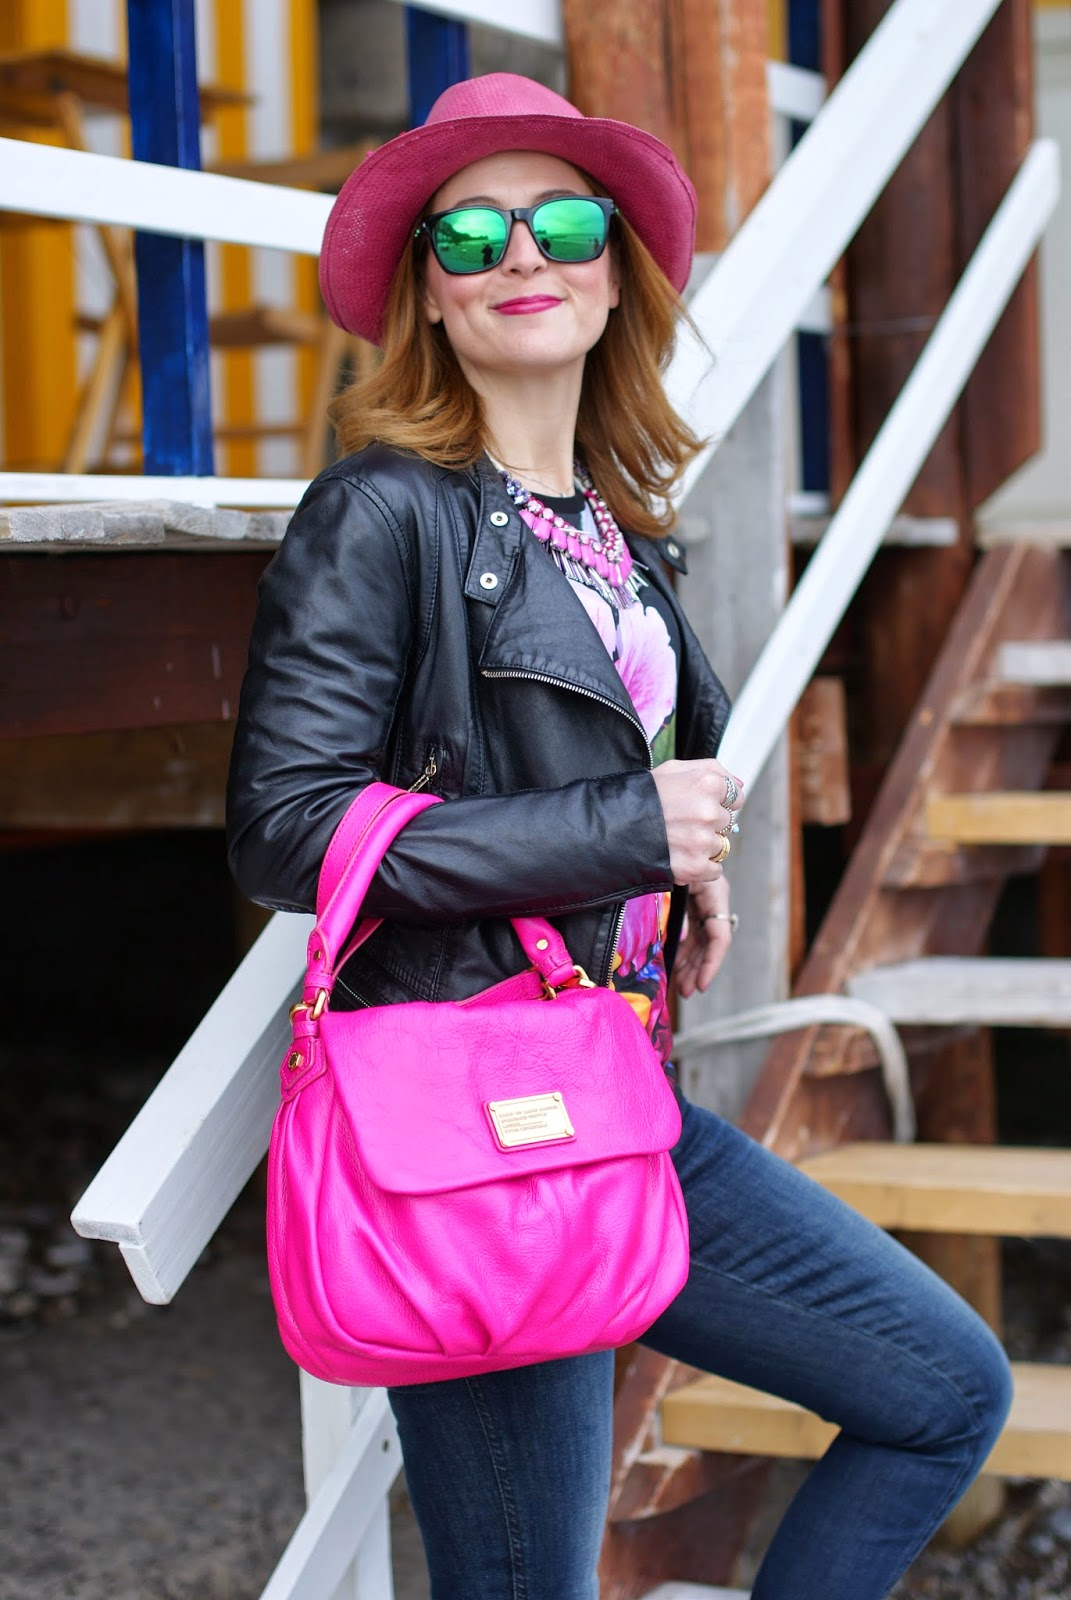 cappello paglia fucsia, Sodini collana fucsia, girls with dimples, Marc by Marc Jacobs lil ukita pop pink bag, Ruco Line boots, Fashion and Cookies, fashion blogger